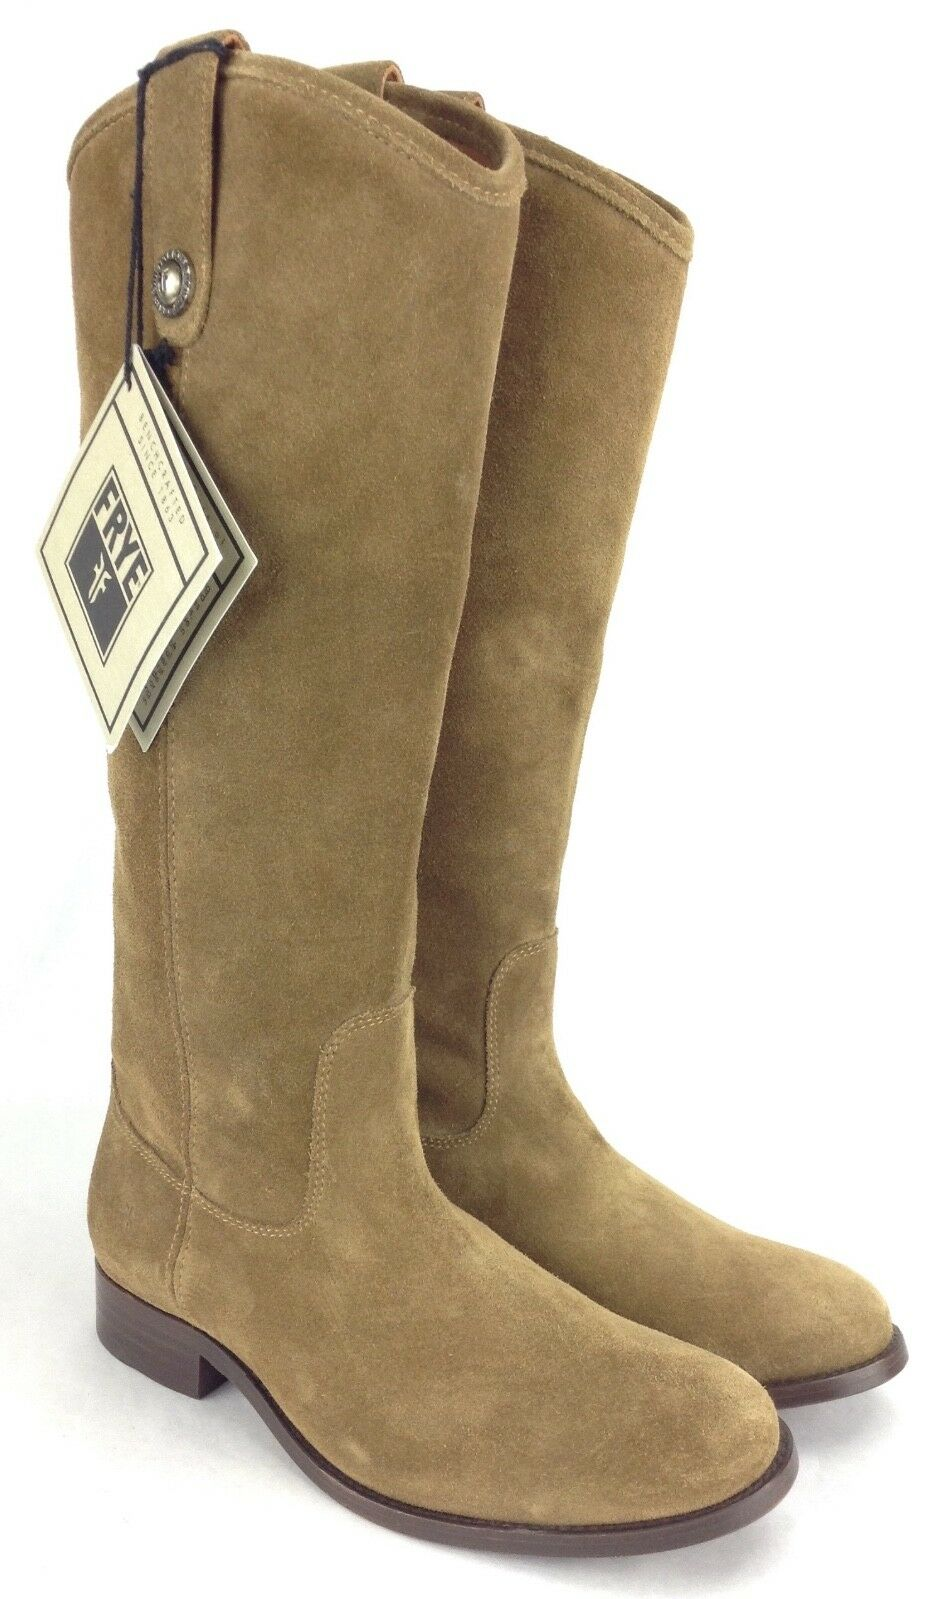 Frye Melissa Button Cashew Brown Suede High Riding Boots Women's Size 6.5